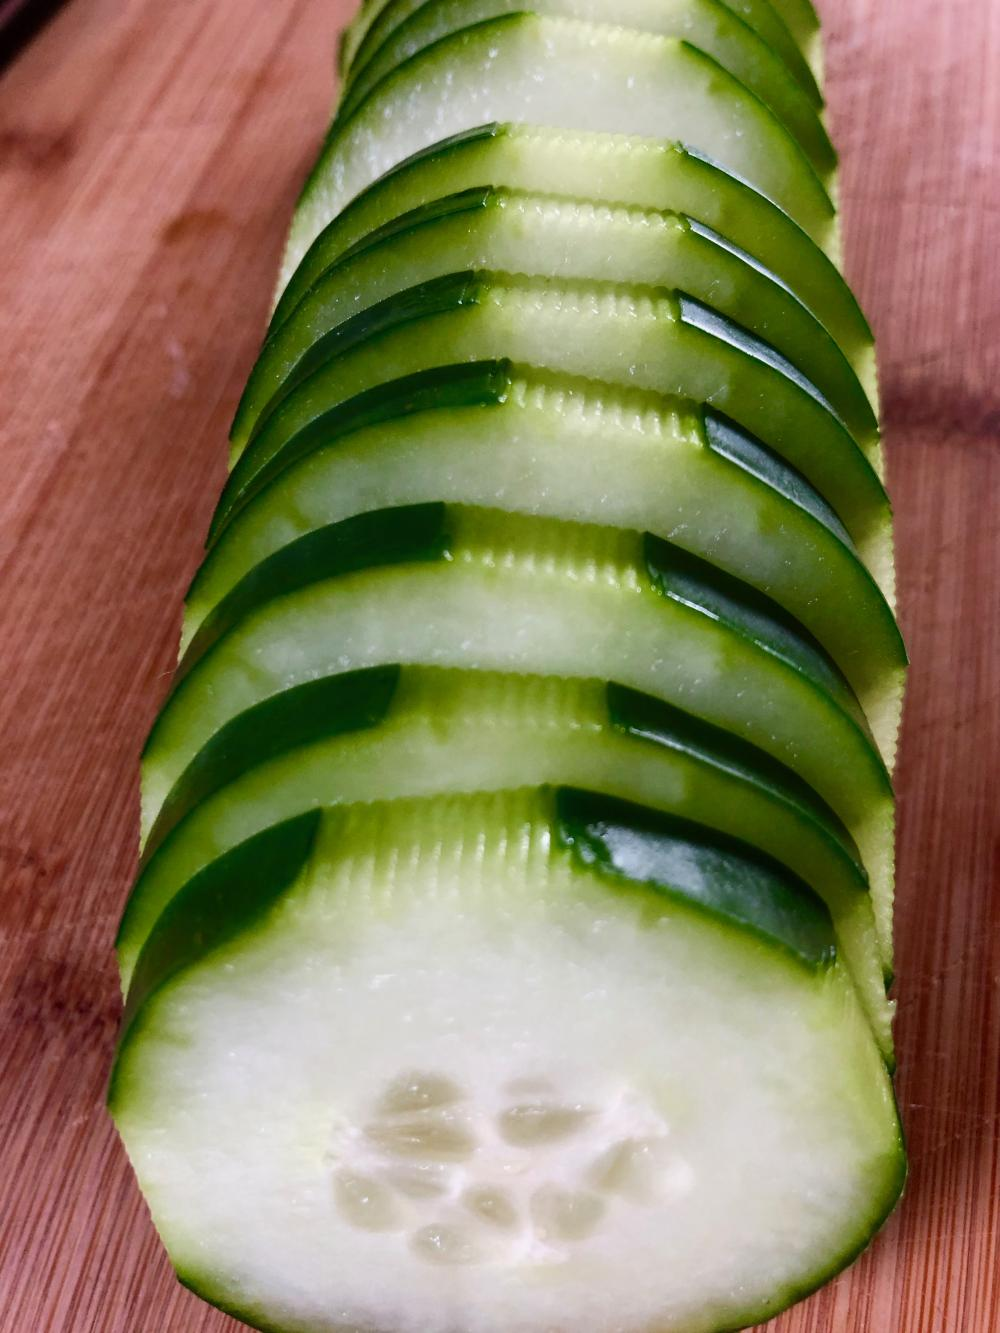 Getting fancy with a cucumber